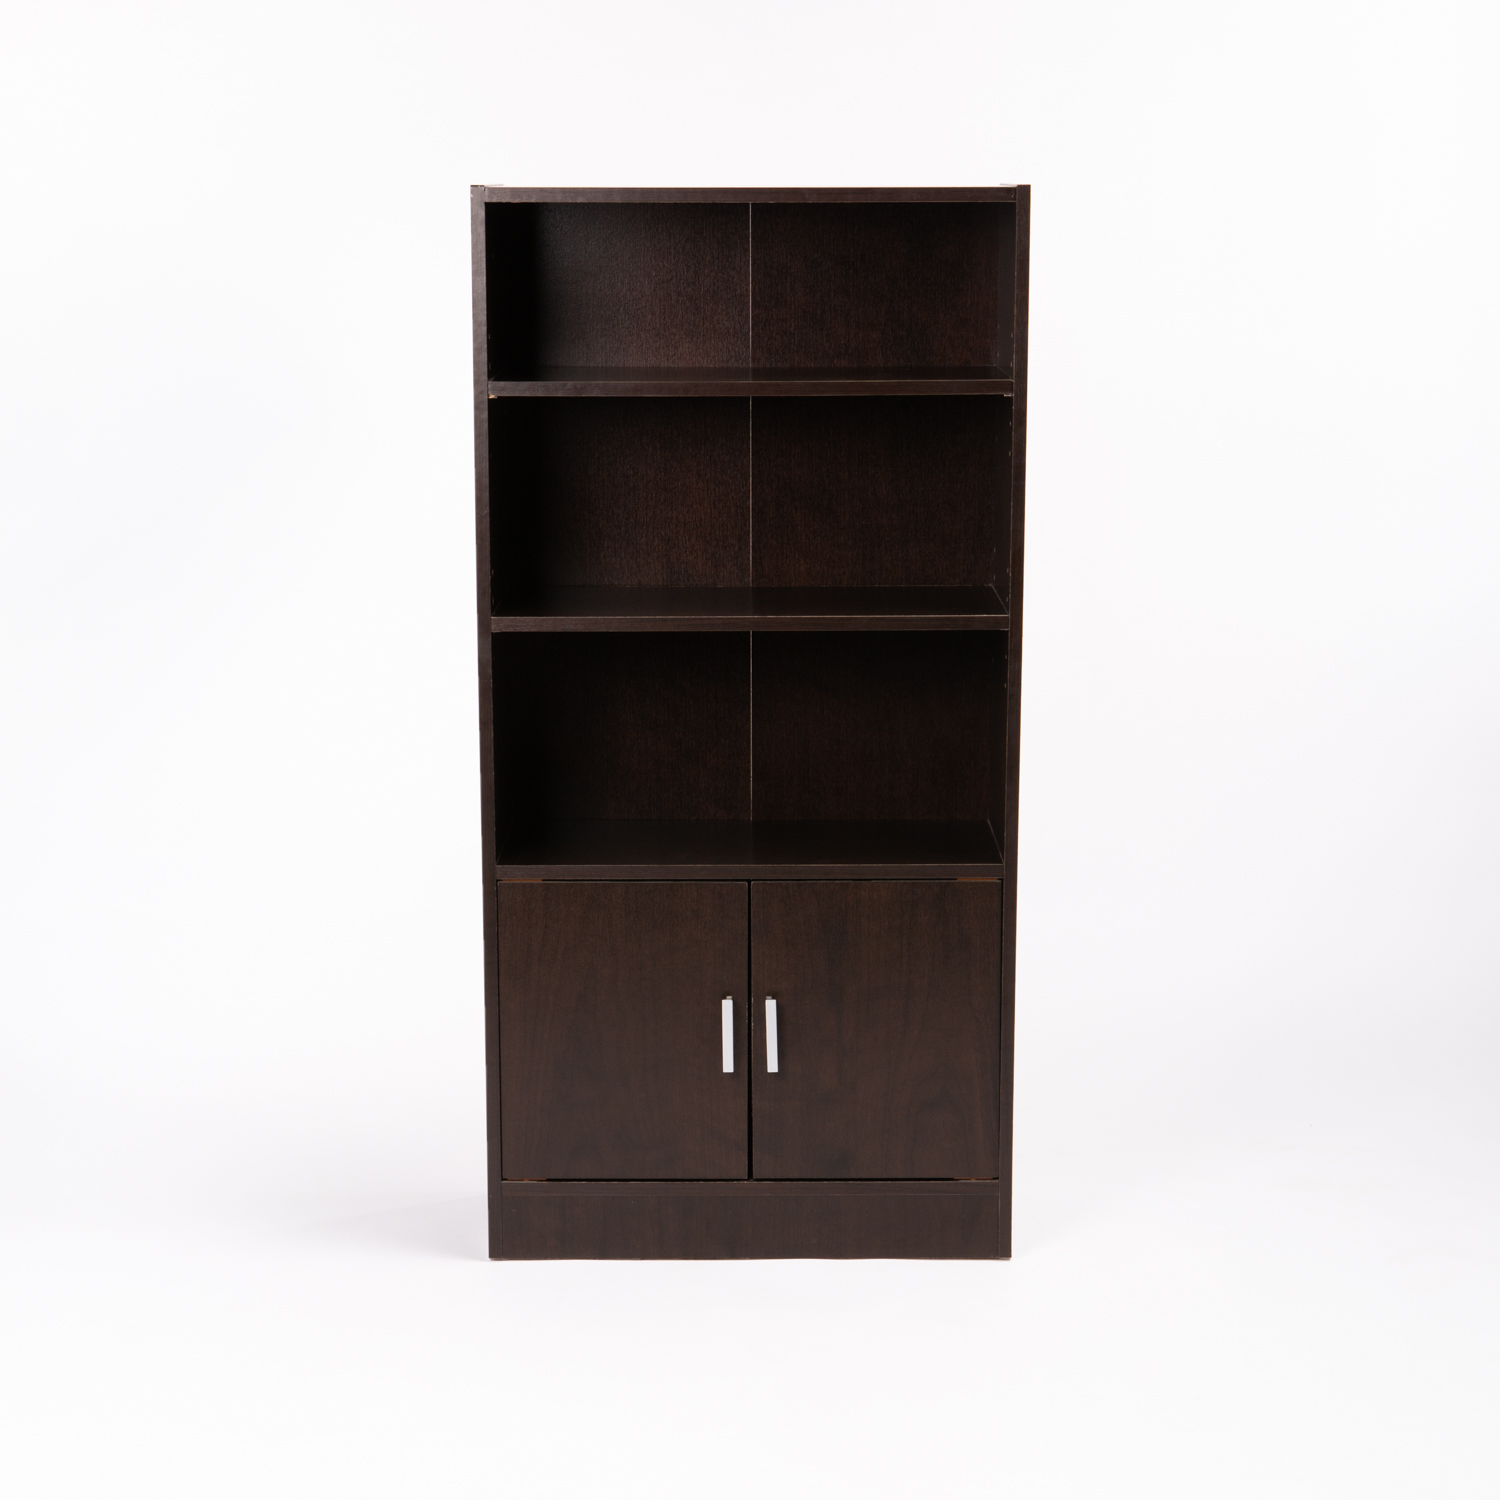 CYRUS 2 DOOR 3 SHELF BOOKCASE